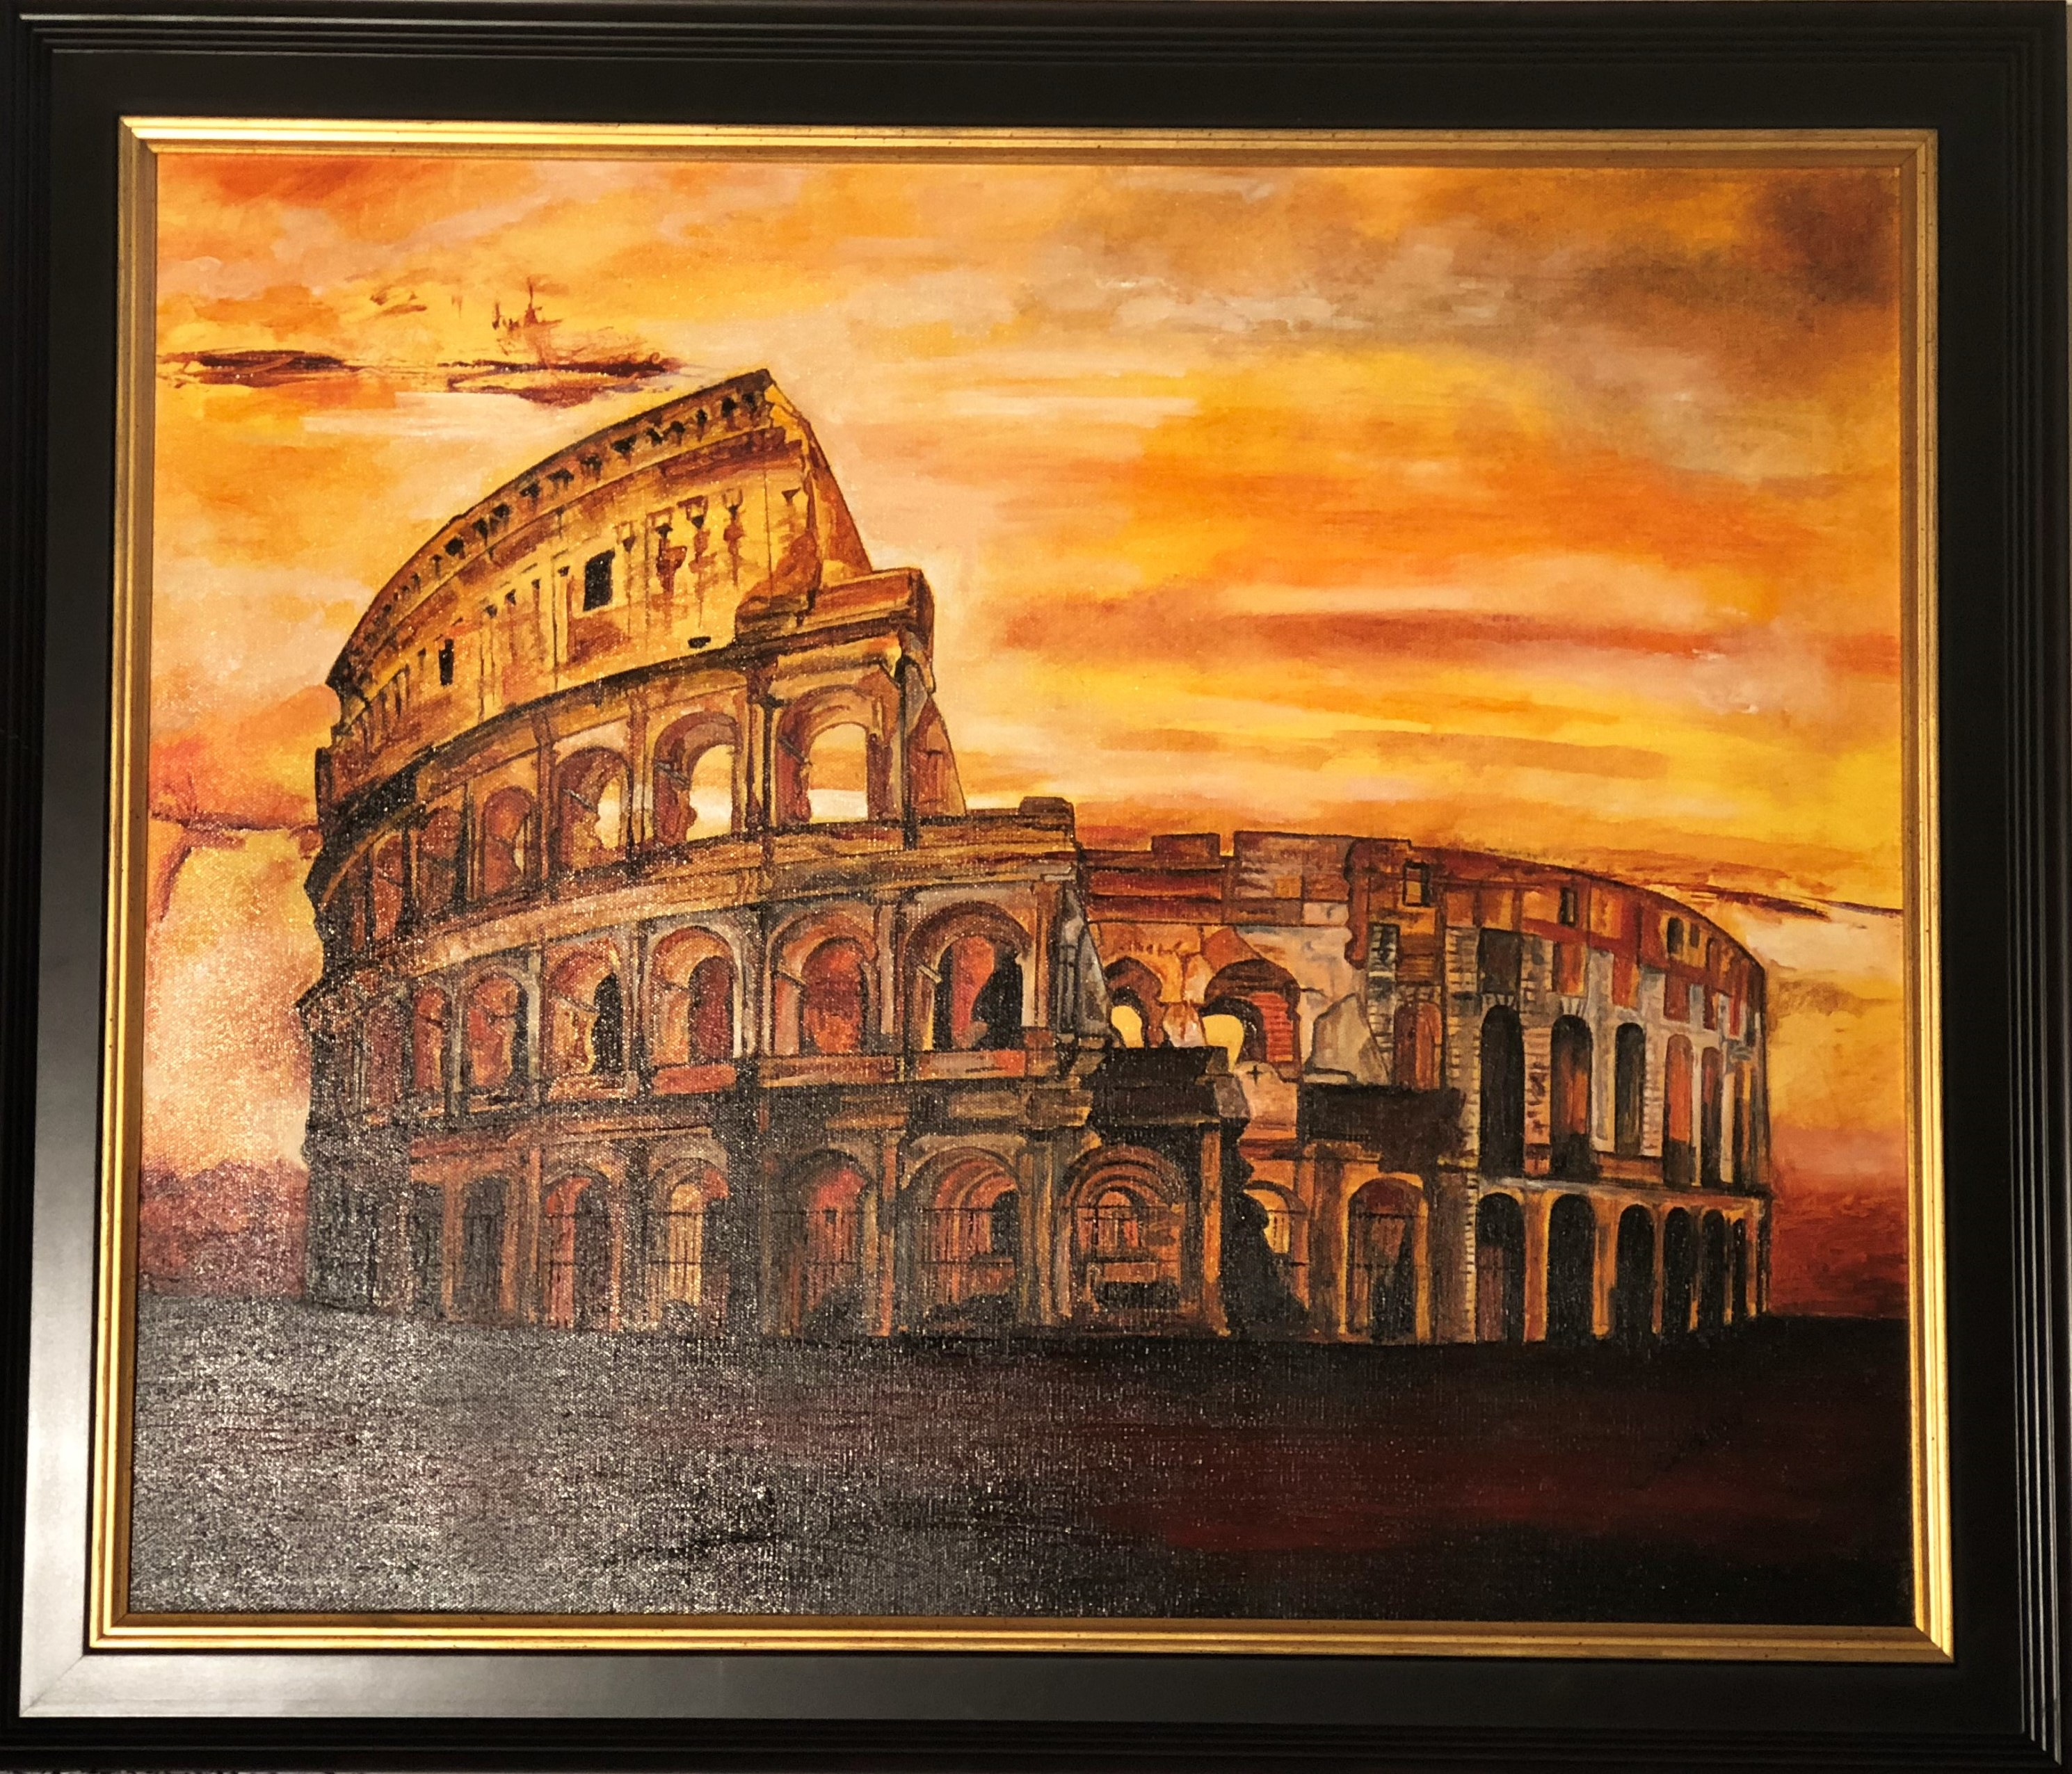 WBD1004 – Coliseum of Rome By Cathrine Colosimo